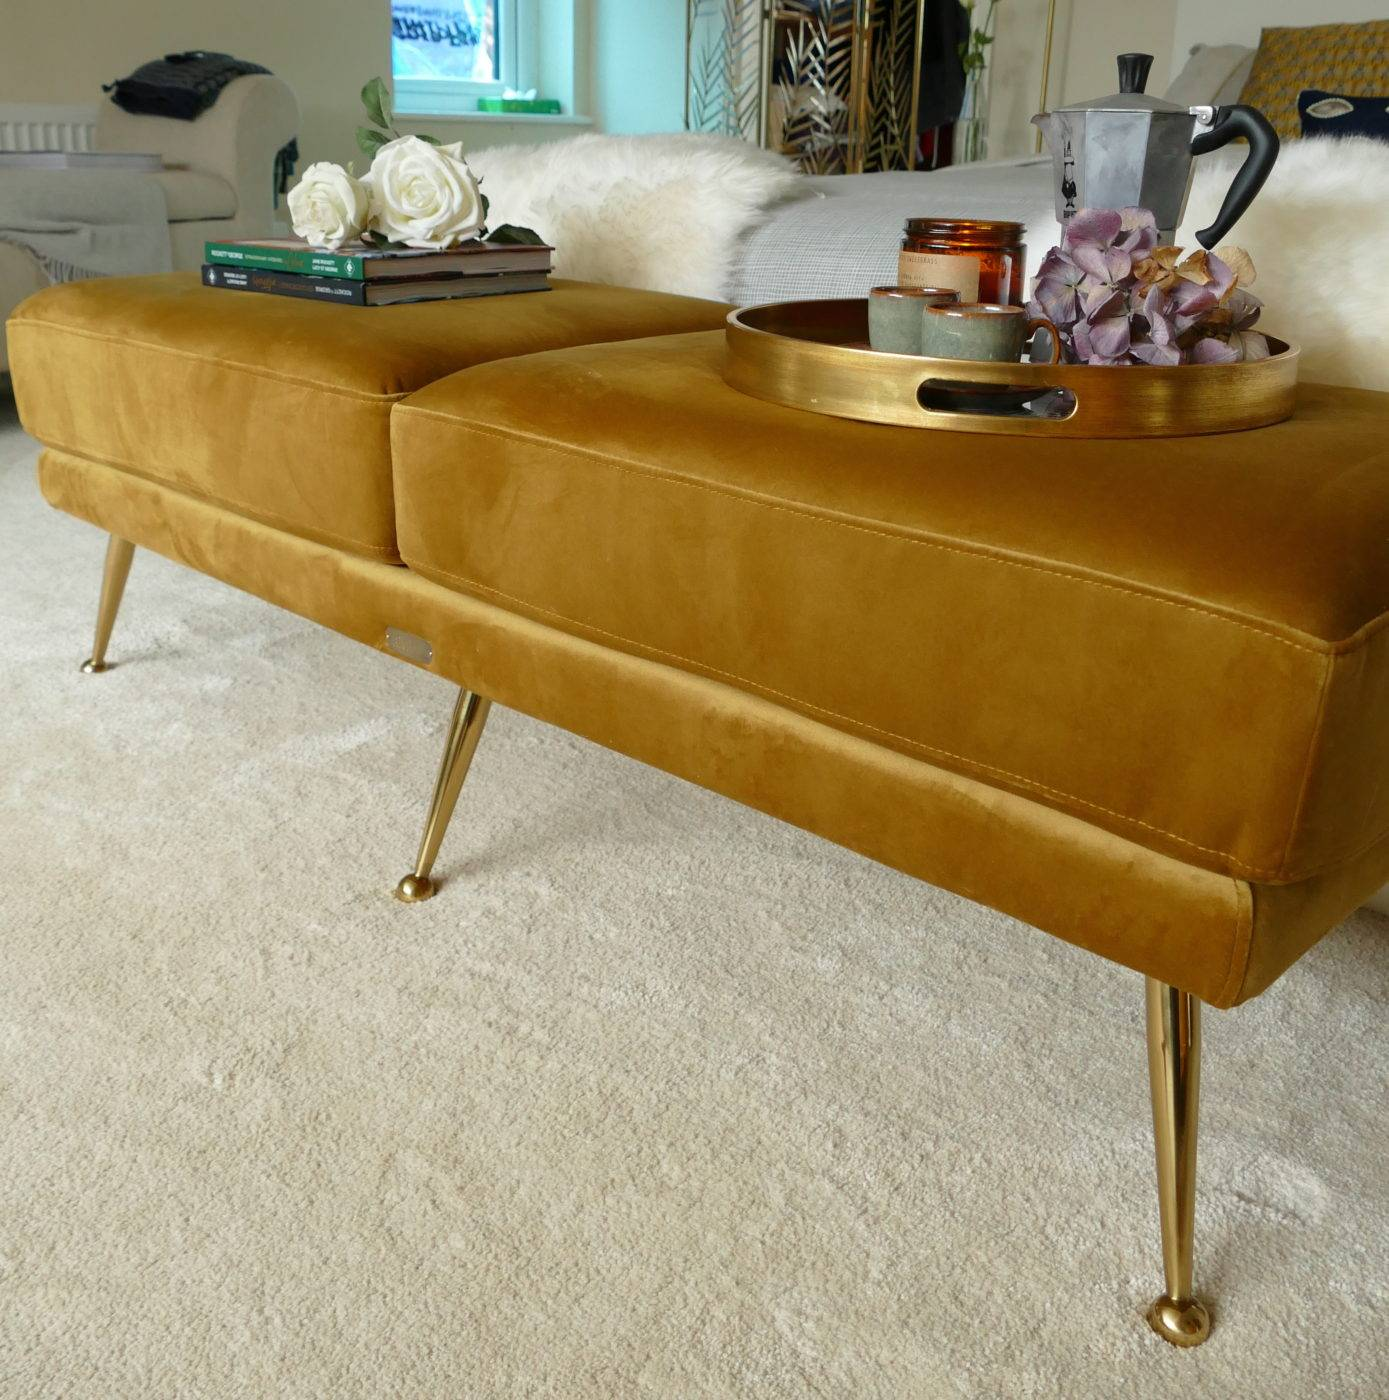 mid century mustard ottoman at the end of bed with tray